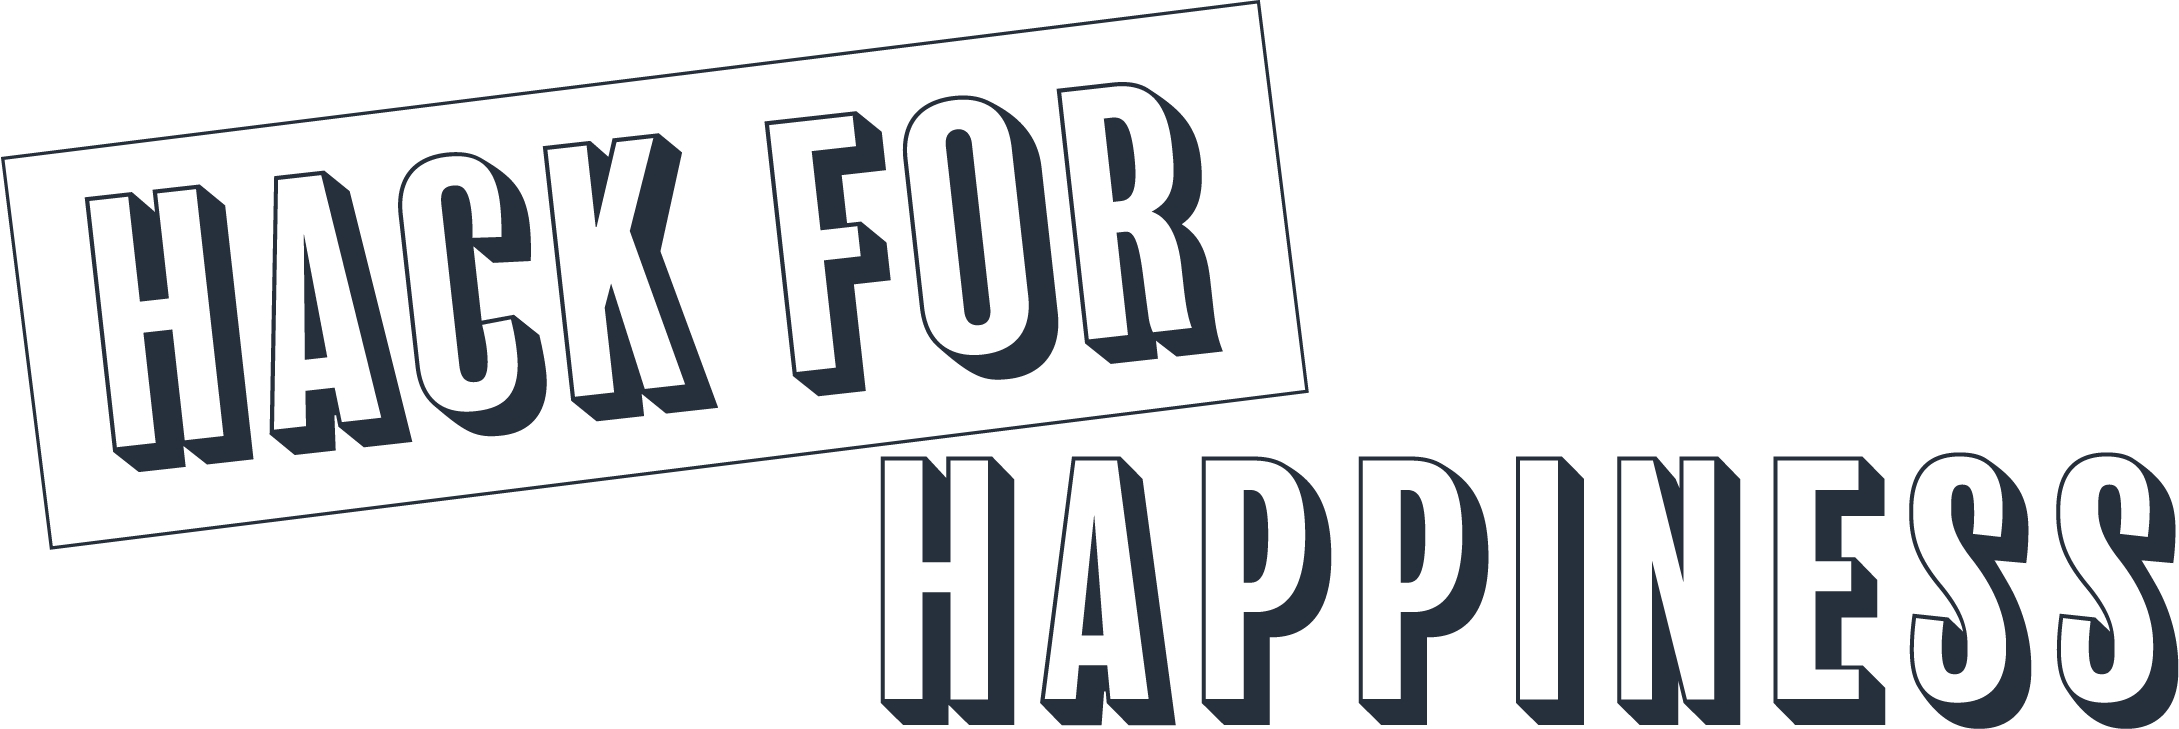 Hack For Happiness